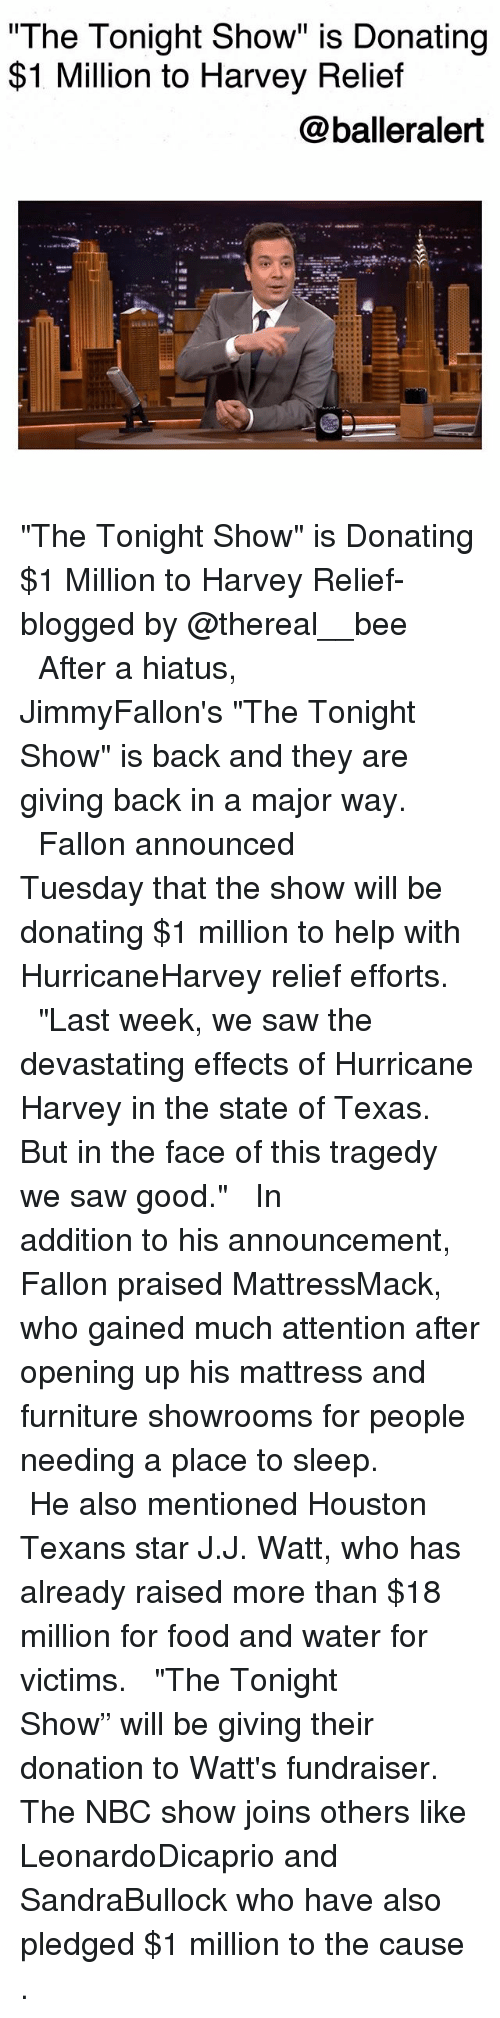 "Houston Texans: The Tonight Show"" is Donating  $1 Million to Harvey Relief  @balleralert  s@汽. ""The Tonight Show"" is Donating $1 Million to Harvey Relief-blogged by @thereal__bee ⠀⠀⠀⠀⠀⠀⠀⠀⠀ ⠀⠀ After a hiatus, JimmyFallon's ""The Tonight Show"" is back and they are giving back in a major way. ⠀⠀⠀⠀⠀⠀⠀⠀⠀ ⠀⠀ Fallon announced Tuesday that the show will be donating $1 million to help with HurricaneHarvey relief efforts. ⠀⠀⠀⠀⠀⠀⠀⠀⠀ ⠀⠀ ""Last week, we saw the devastating effects of Hurricane Harvey in the state of Texas. But in the face of this tragedy we saw good."" ⠀⠀⠀⠀⠀⠀⠀⠀⠀ ⠀⠀ In addition to his announcement, Fallon praised MattressMack, who gained much attention after opening up his mattress and furniture showrooms for people needing a place to sleep. ⠀⠀⠀⠀⠀⠀⠀⠀⠀ ⠀⠀ He also mentioned Houston Texans star J.J. Watt, who has already raised more than $18 million for food and water for victims. ⠀⠀⠀⠀⠀⠀⠀⠀⠀ ⠀⠀ ""The Tonight Show"" will be giving their donation to Watt's fundraiser. The NBC show joins others like LeonardoDicaprio and SandraBullock who have also pledged $1 million to the cause ."